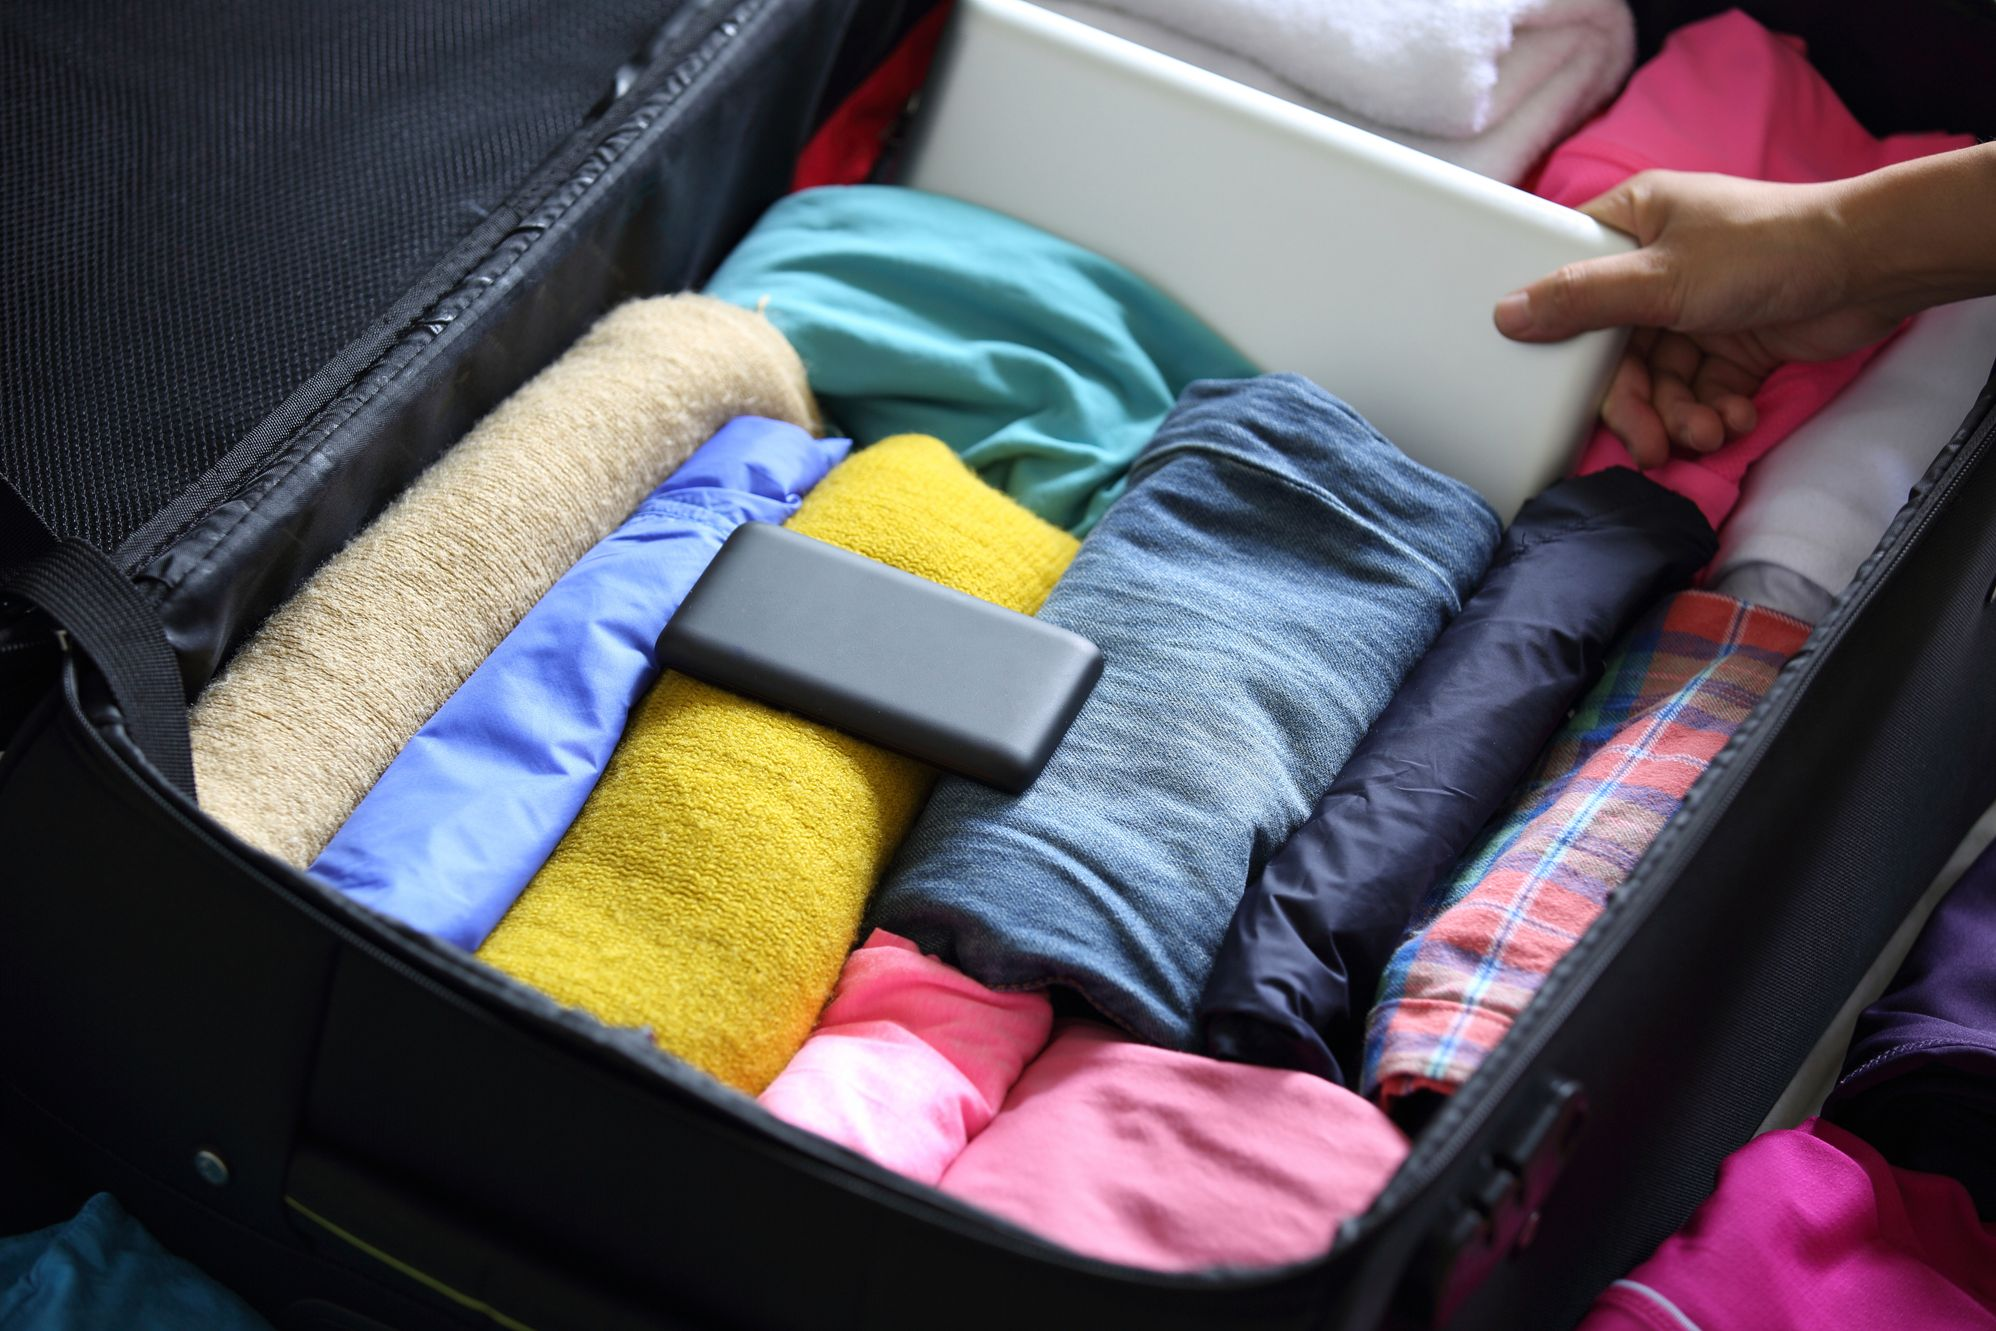 Clothes rolled in a suitcase